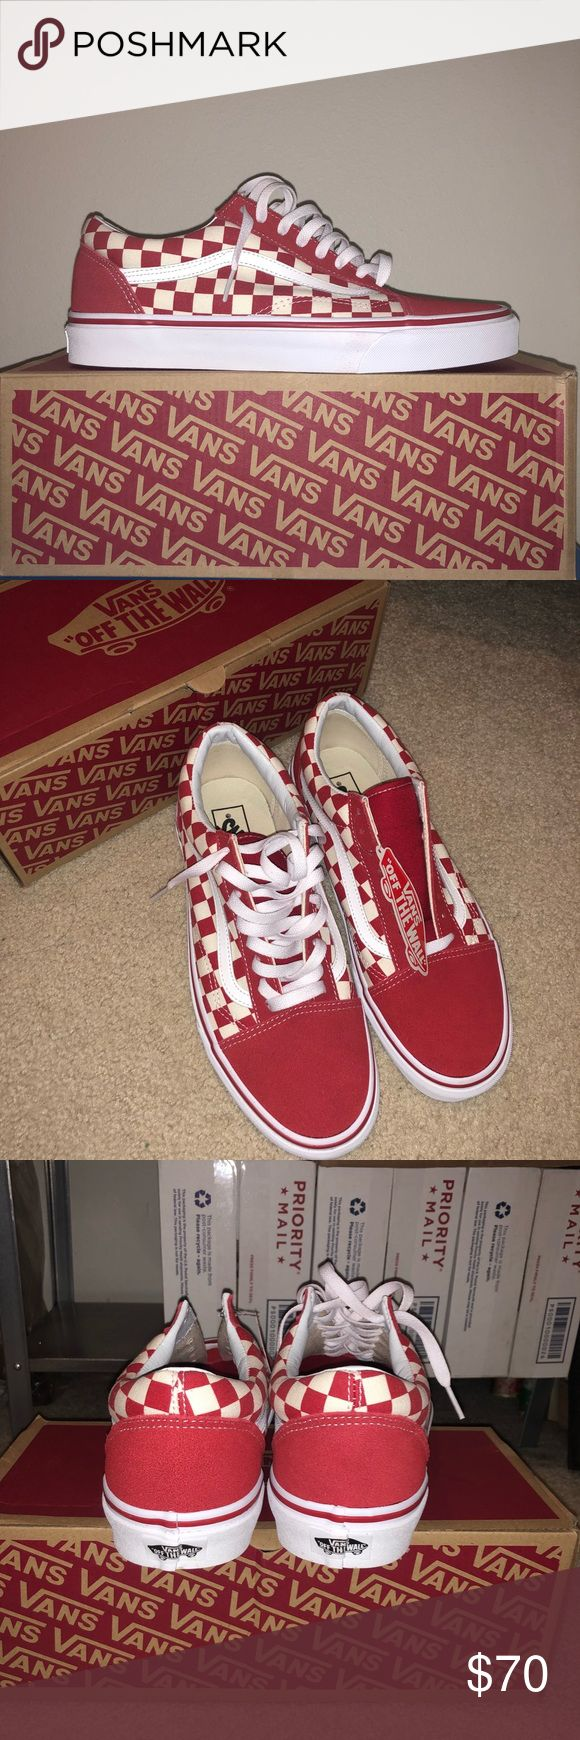 Vans Red Checkered Worn once, no flaws. Selling because too small for me. Will clean before shipping. I ship same day with two day fast shipping. Price is firm because the app takes 20 percent. Vans Shoes Sneakers